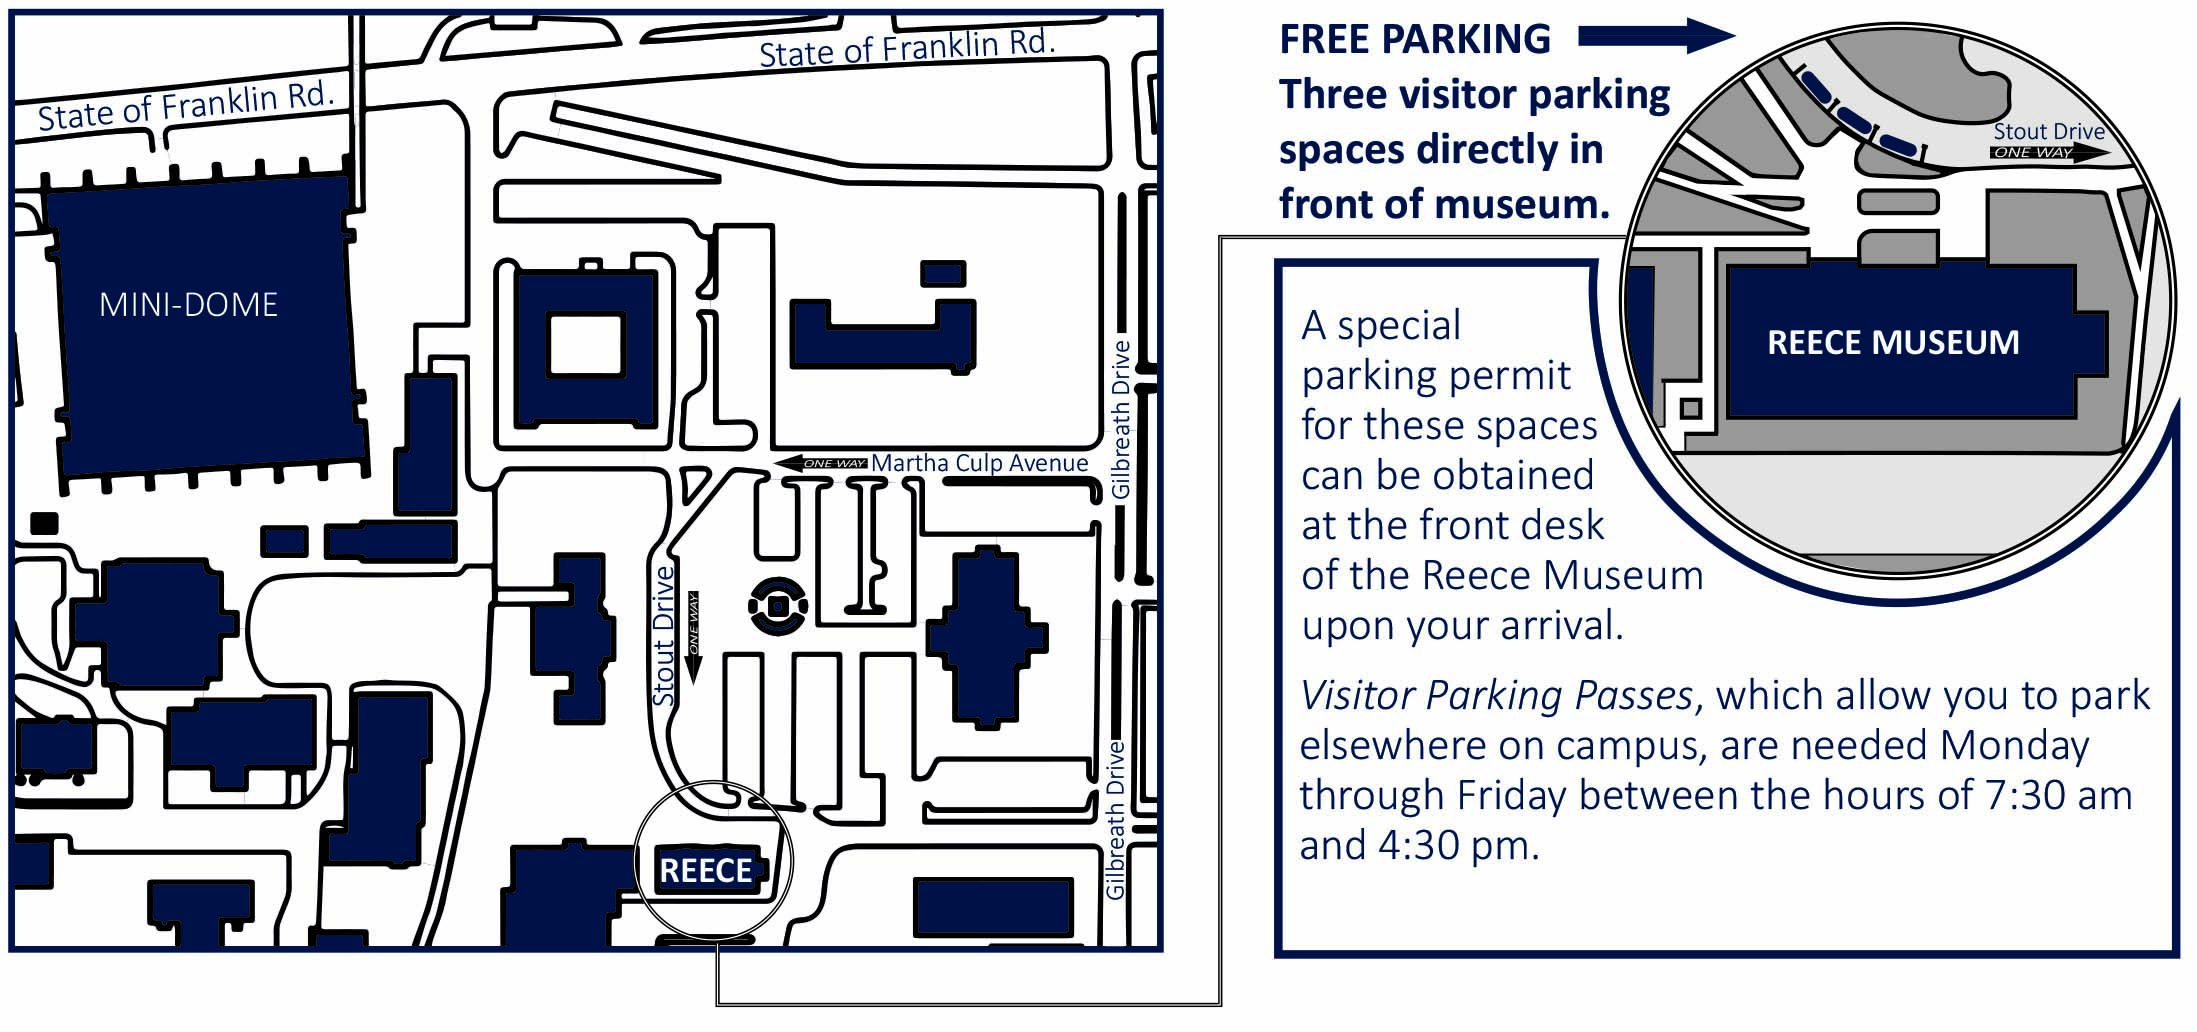 Reece museum parking map and info